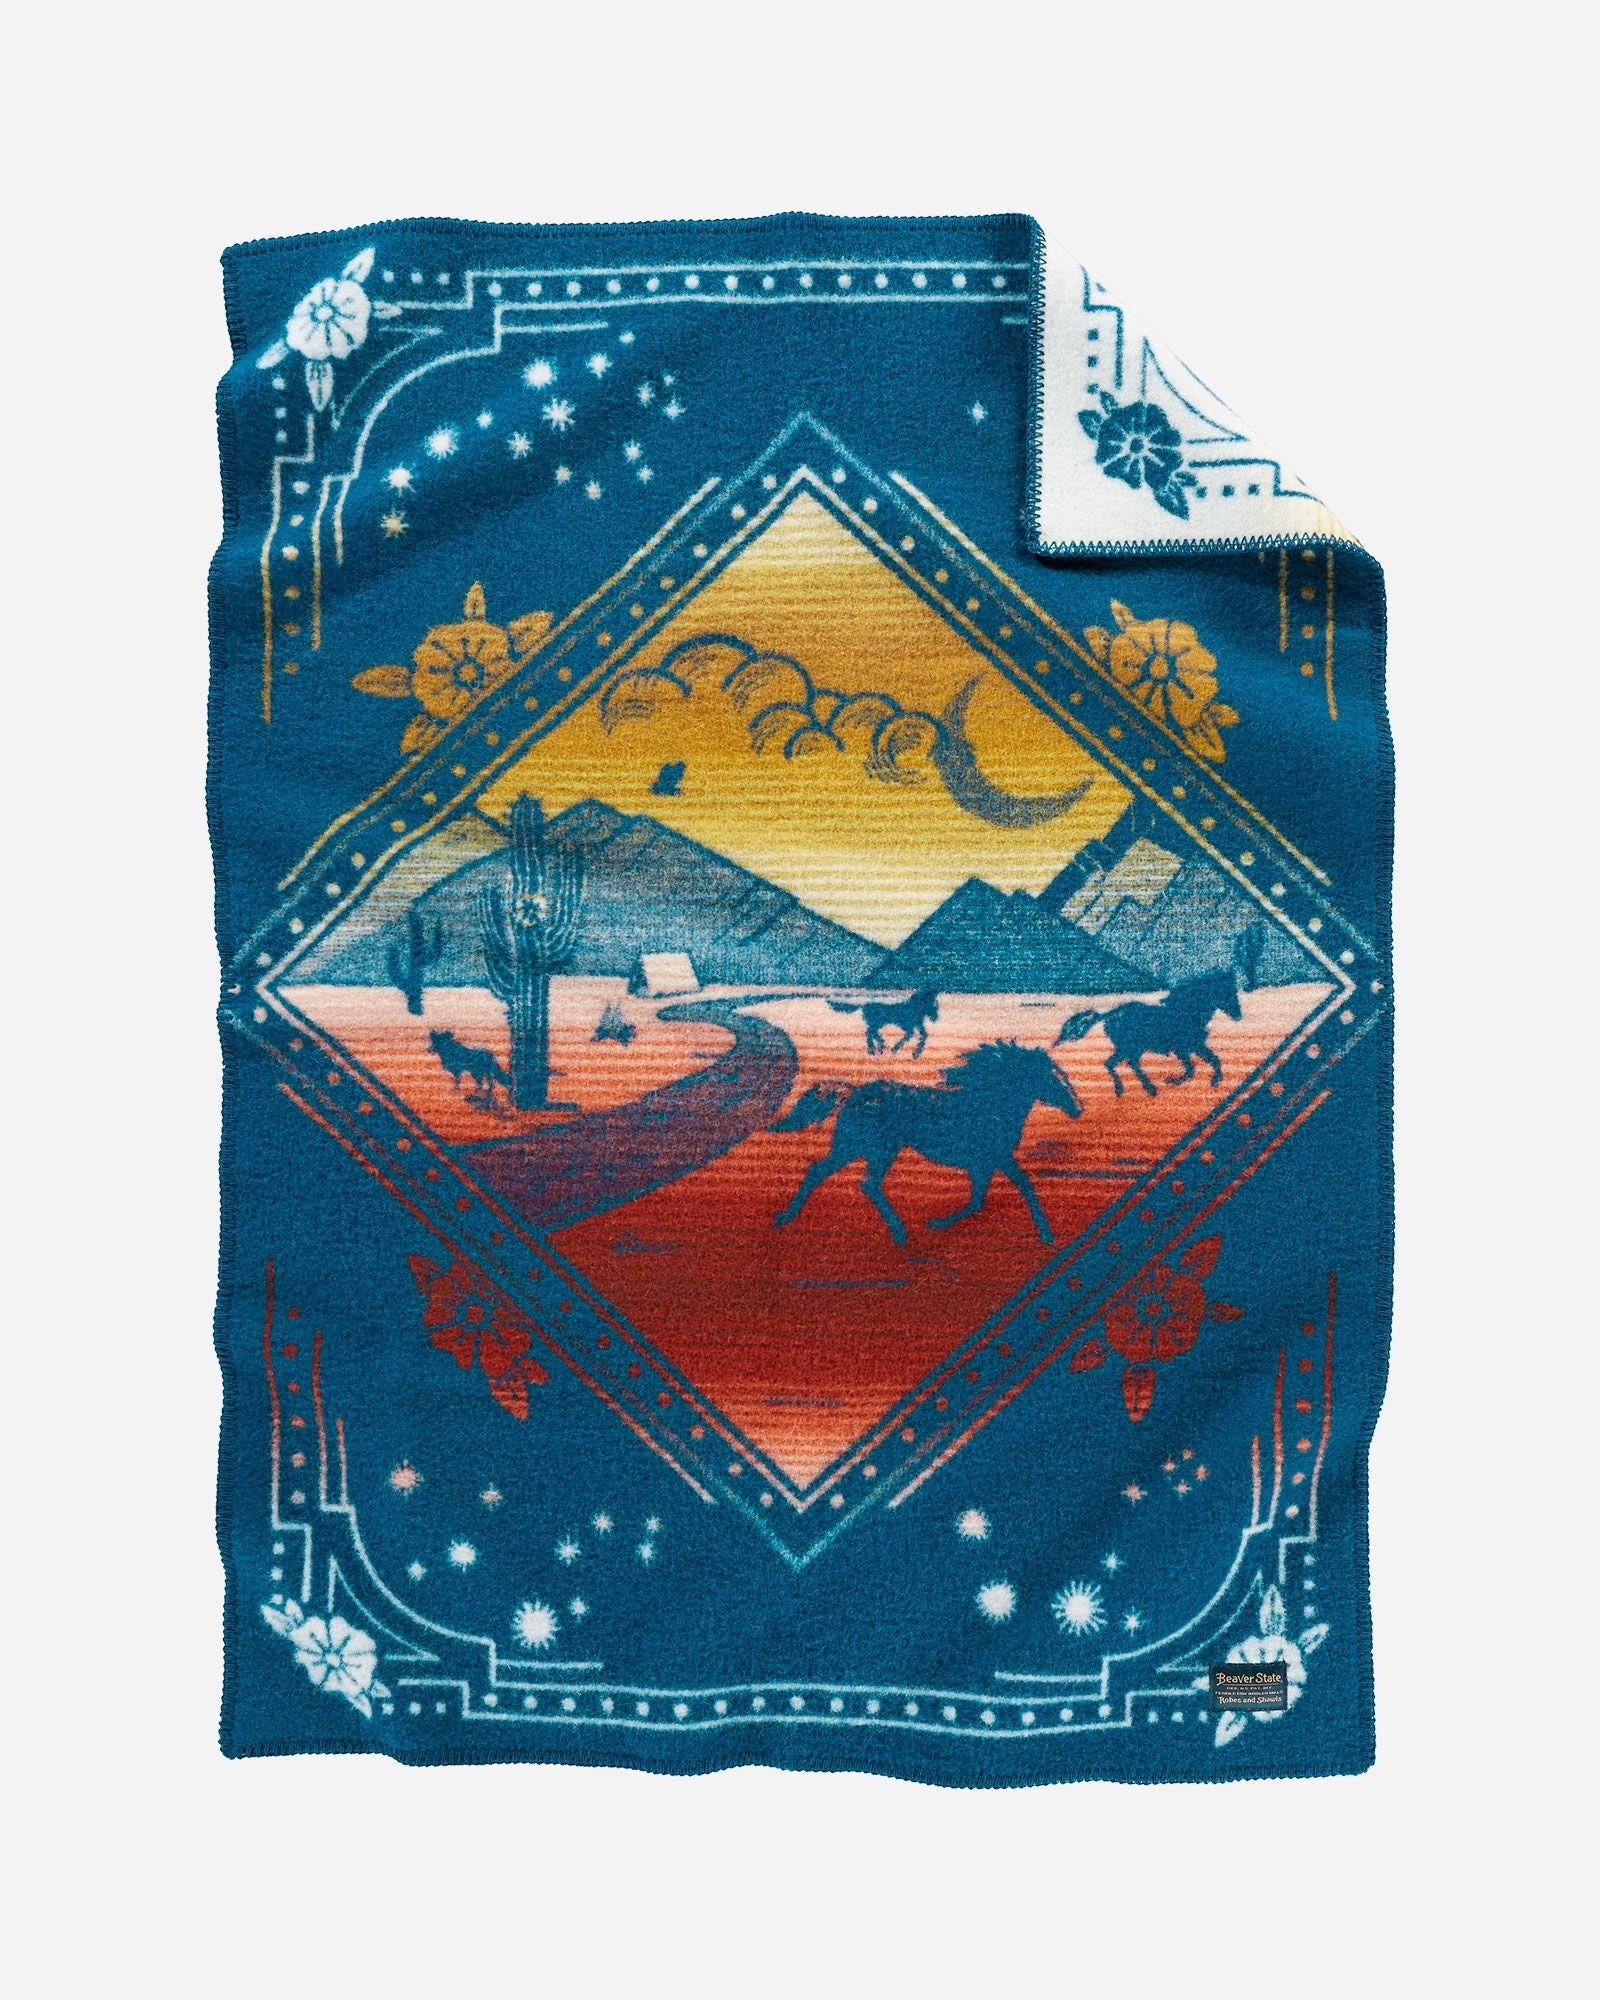 Pendleton wool blue baby blanket, with red and yellow accents and running horses in a mountain desert scene.